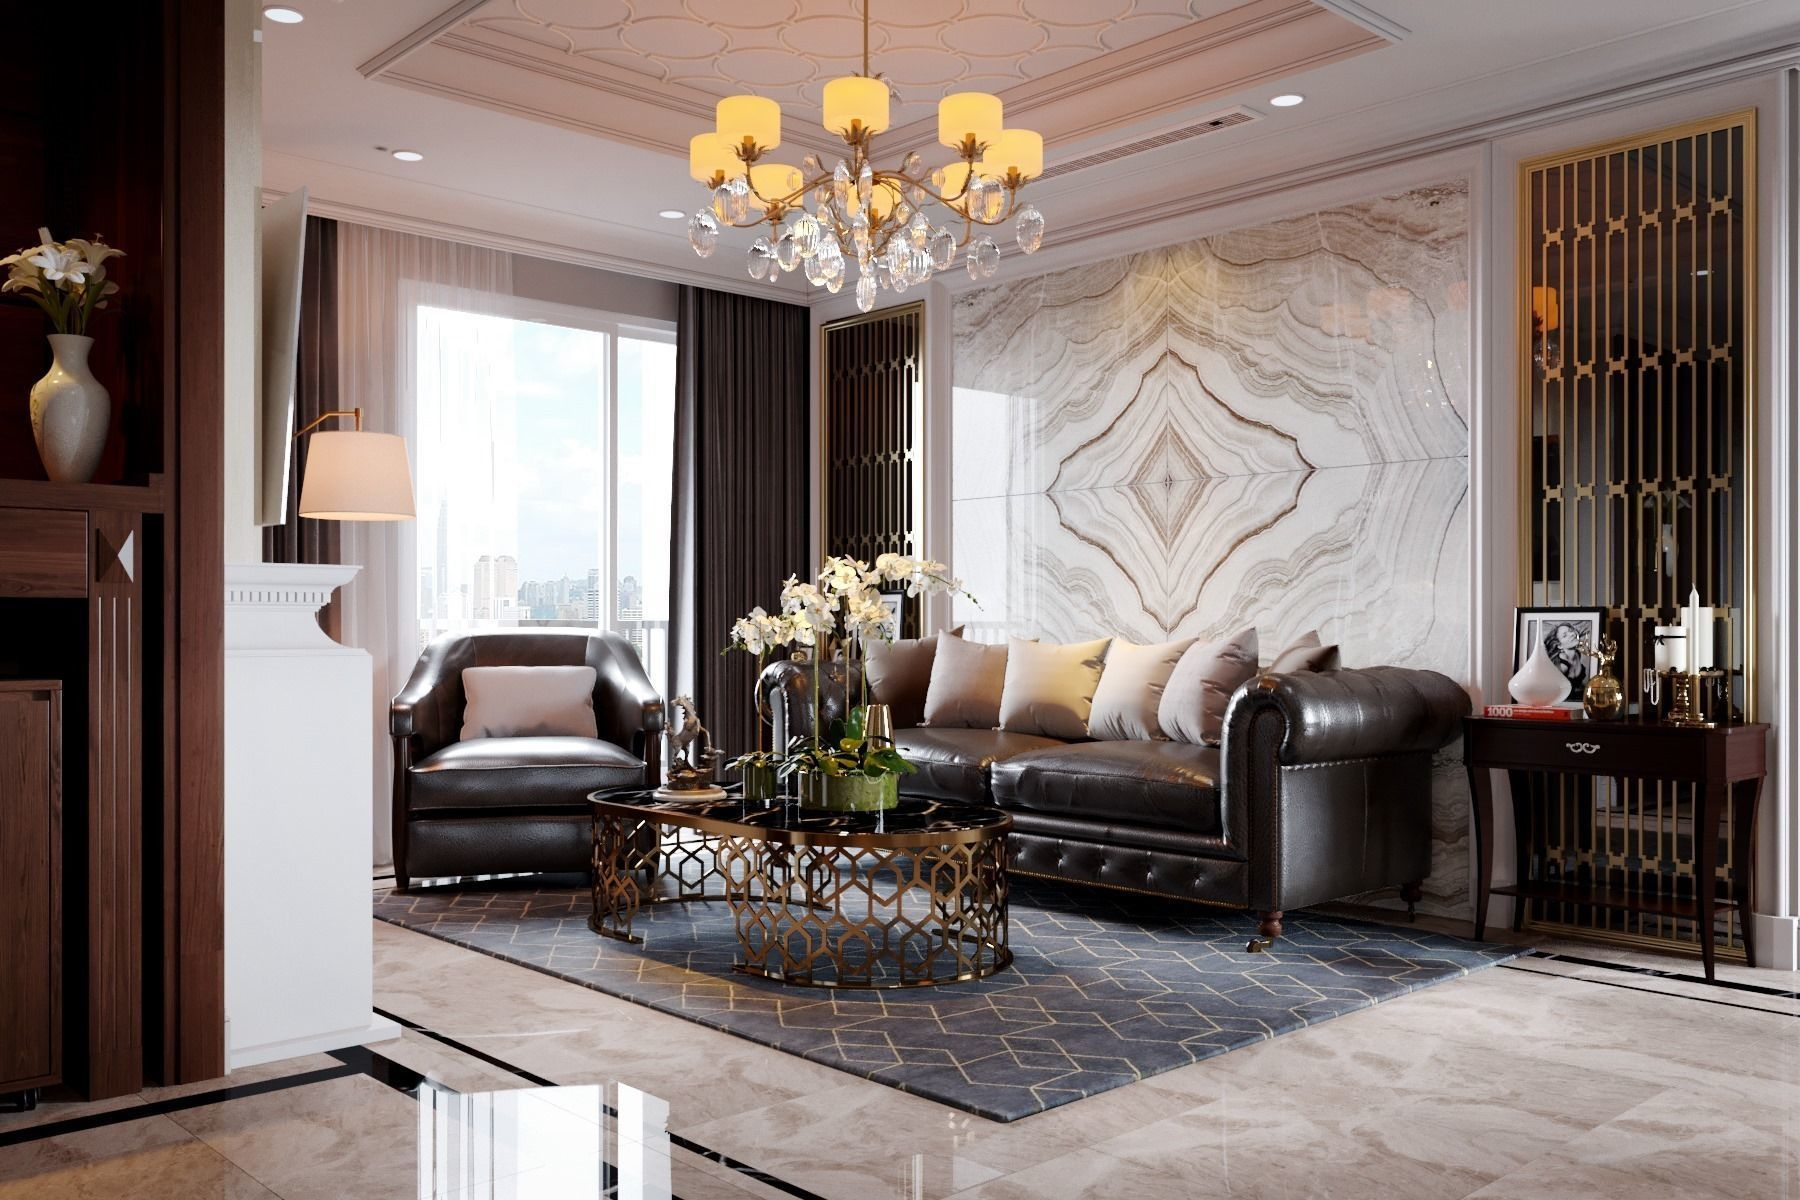 Luxury Apartment Design 2 3D animated | CGTrader